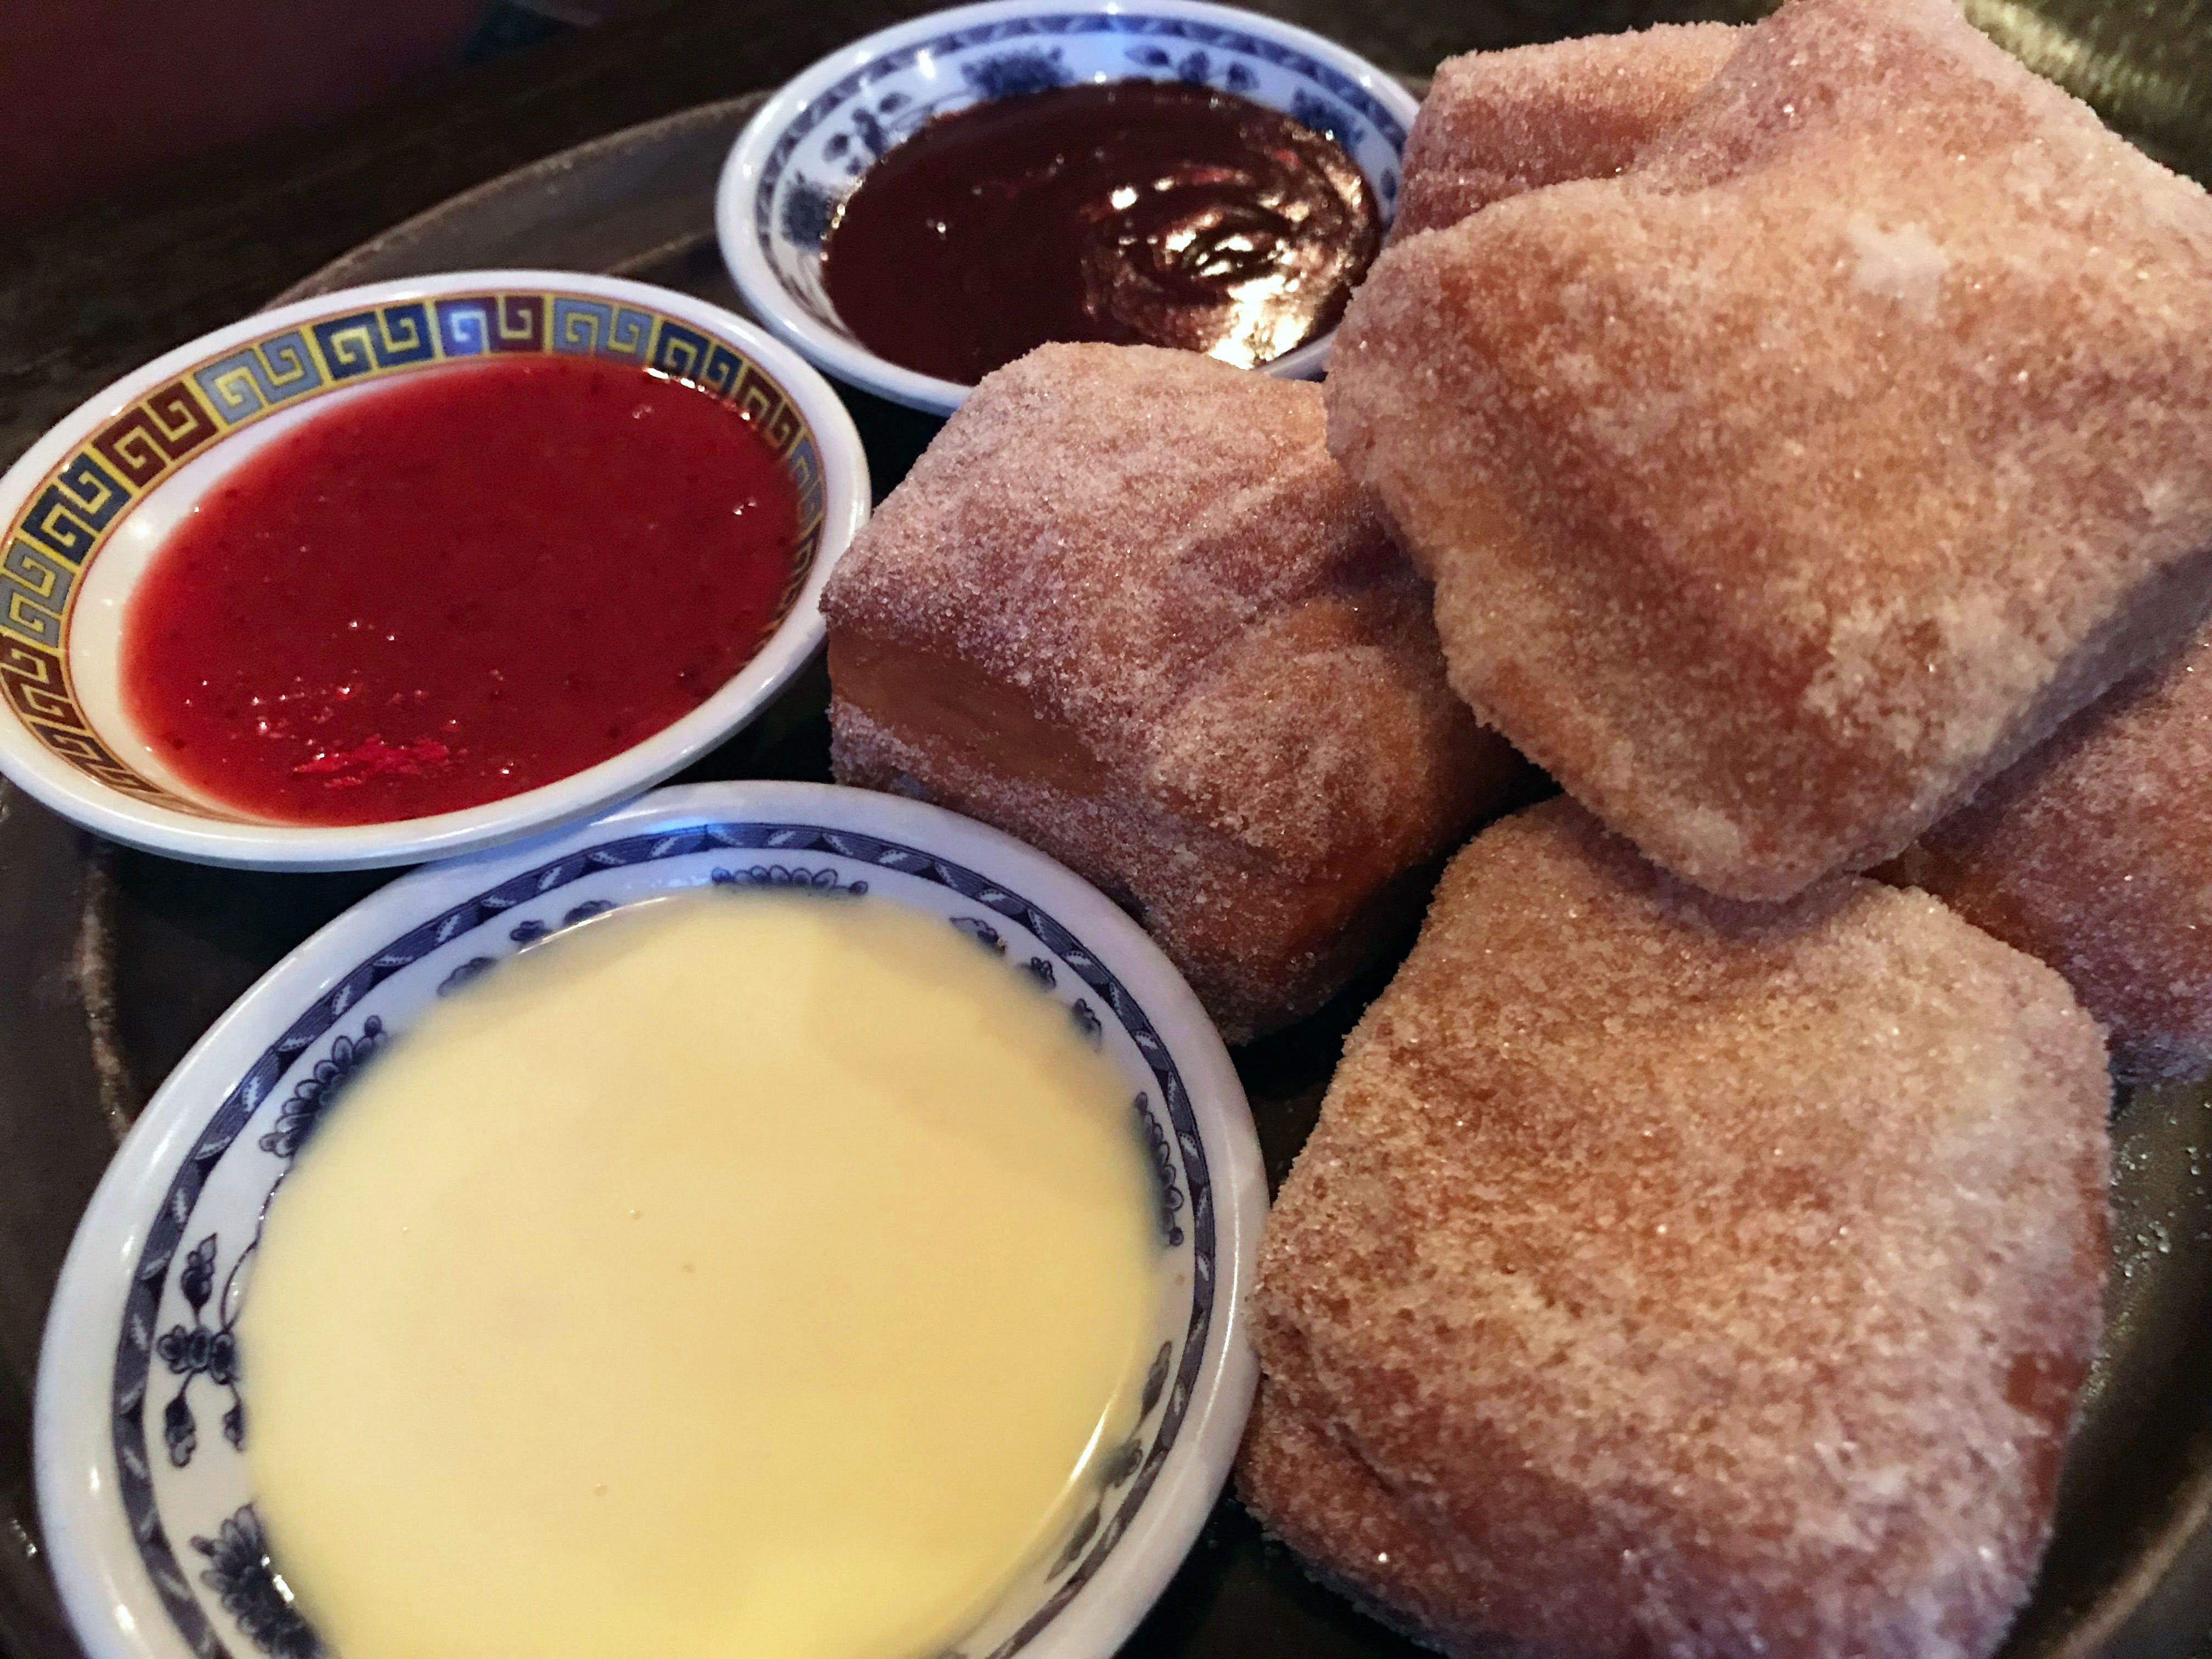 Freshly made Chinese takeout doughnuts are a staple at Dandan, the modern American Chinese restaurant at 360 E. Erie St. They're served with orange ganache, strawberry jam and cinnamon anglaise for dipping.